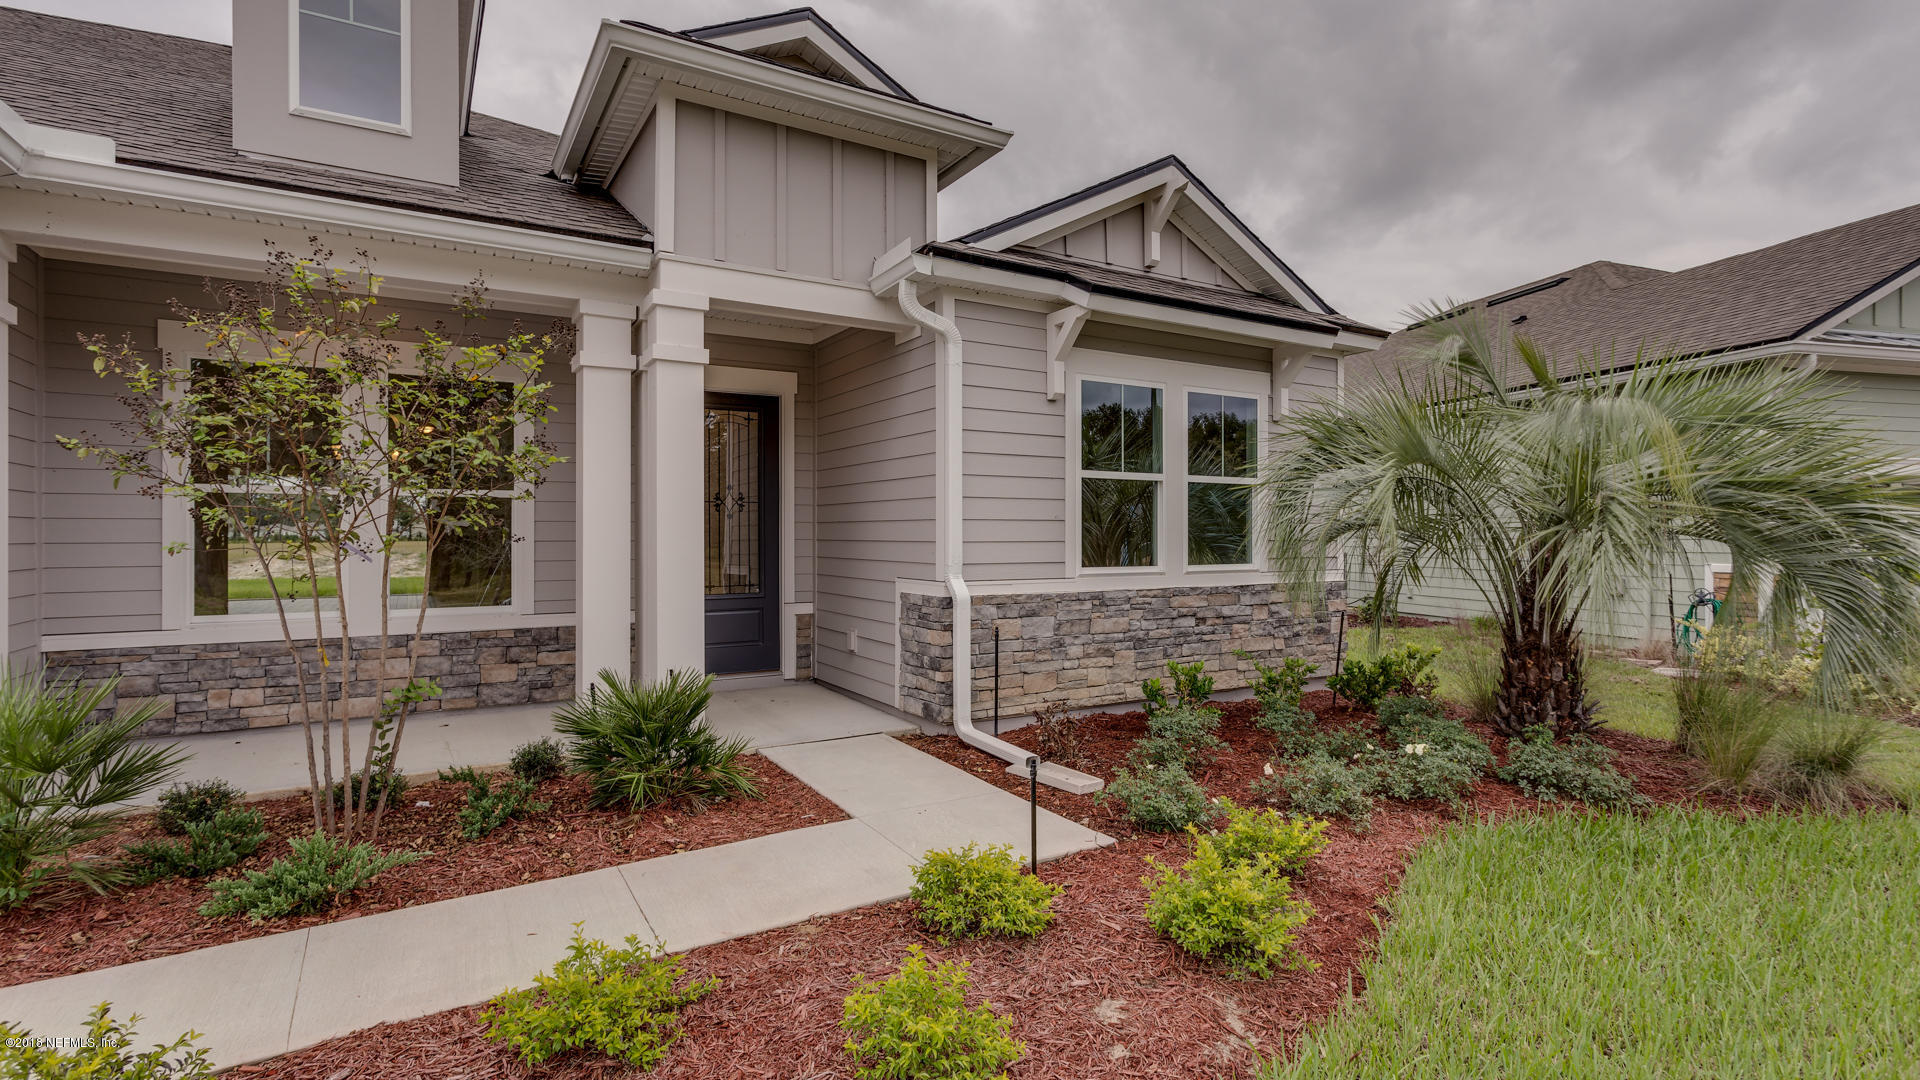 3332 SOUTHERN OAKS, GREEN COVE SPRINGS, FLORIDA 32043, 4 Bedrooms Bedrooms, ,3 BathroomsBathrooms,Residential - single family,For sale,SOUTHERN OAKS,911992